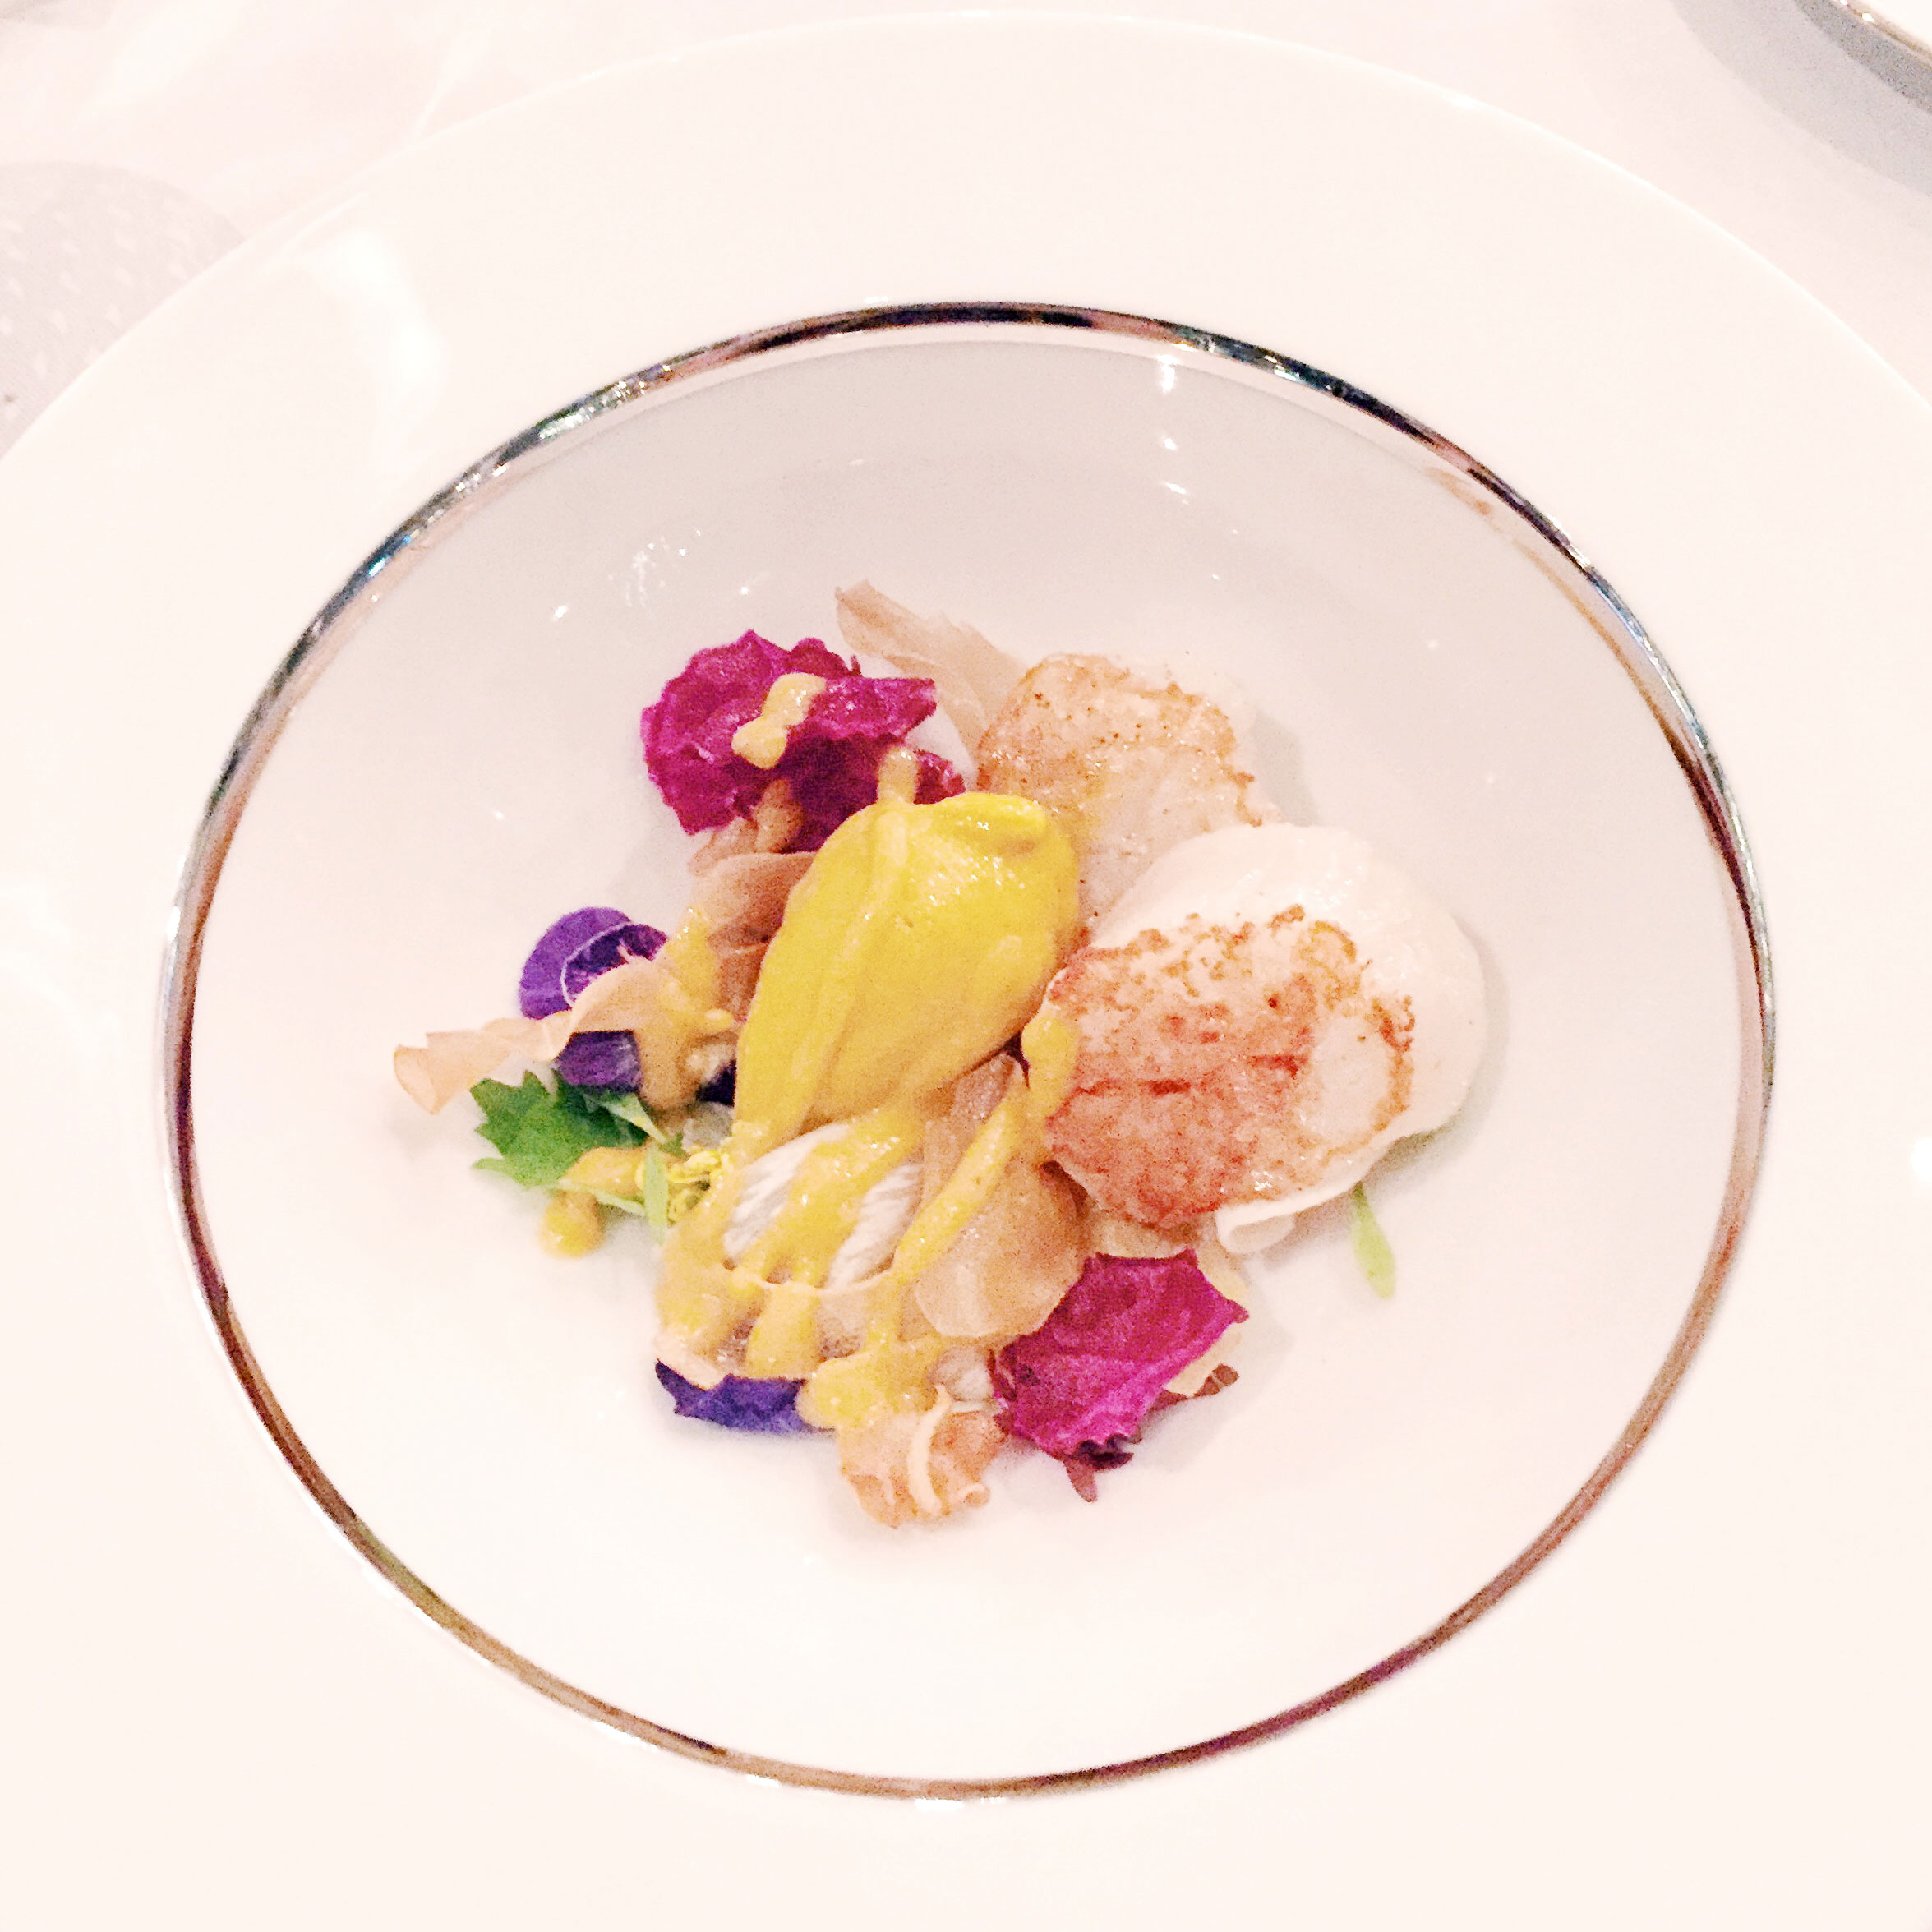 SAVELBERG THAILAND:  For an amazing fine dining experience, try the 8 course menu at   Savelberg  . The food, plating, ambiance, and service were all next level!